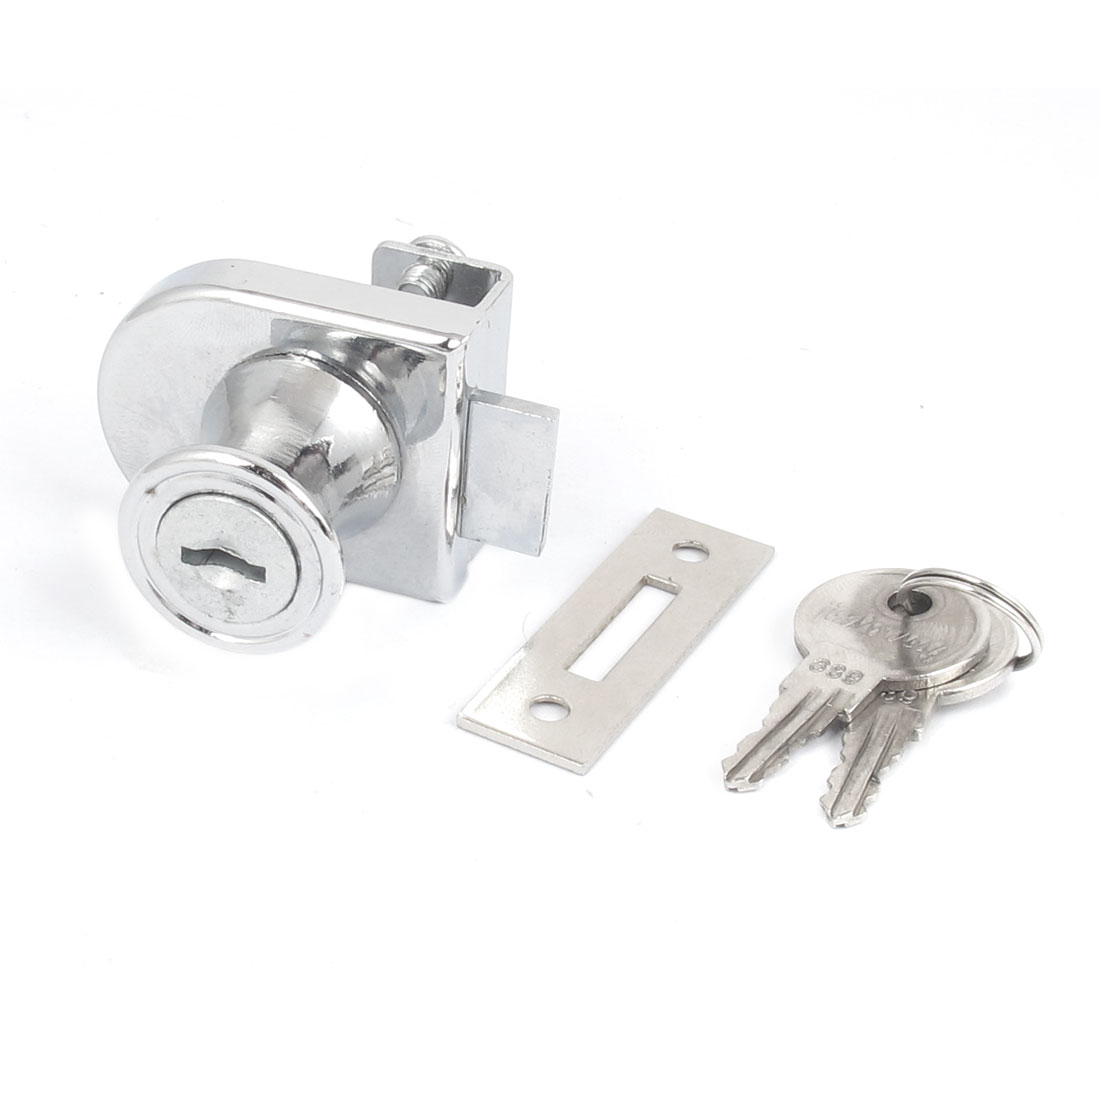 10mm Thickness Keyed Office Shop Cabinet Showcase Glass Door Security Lock Silver Tone